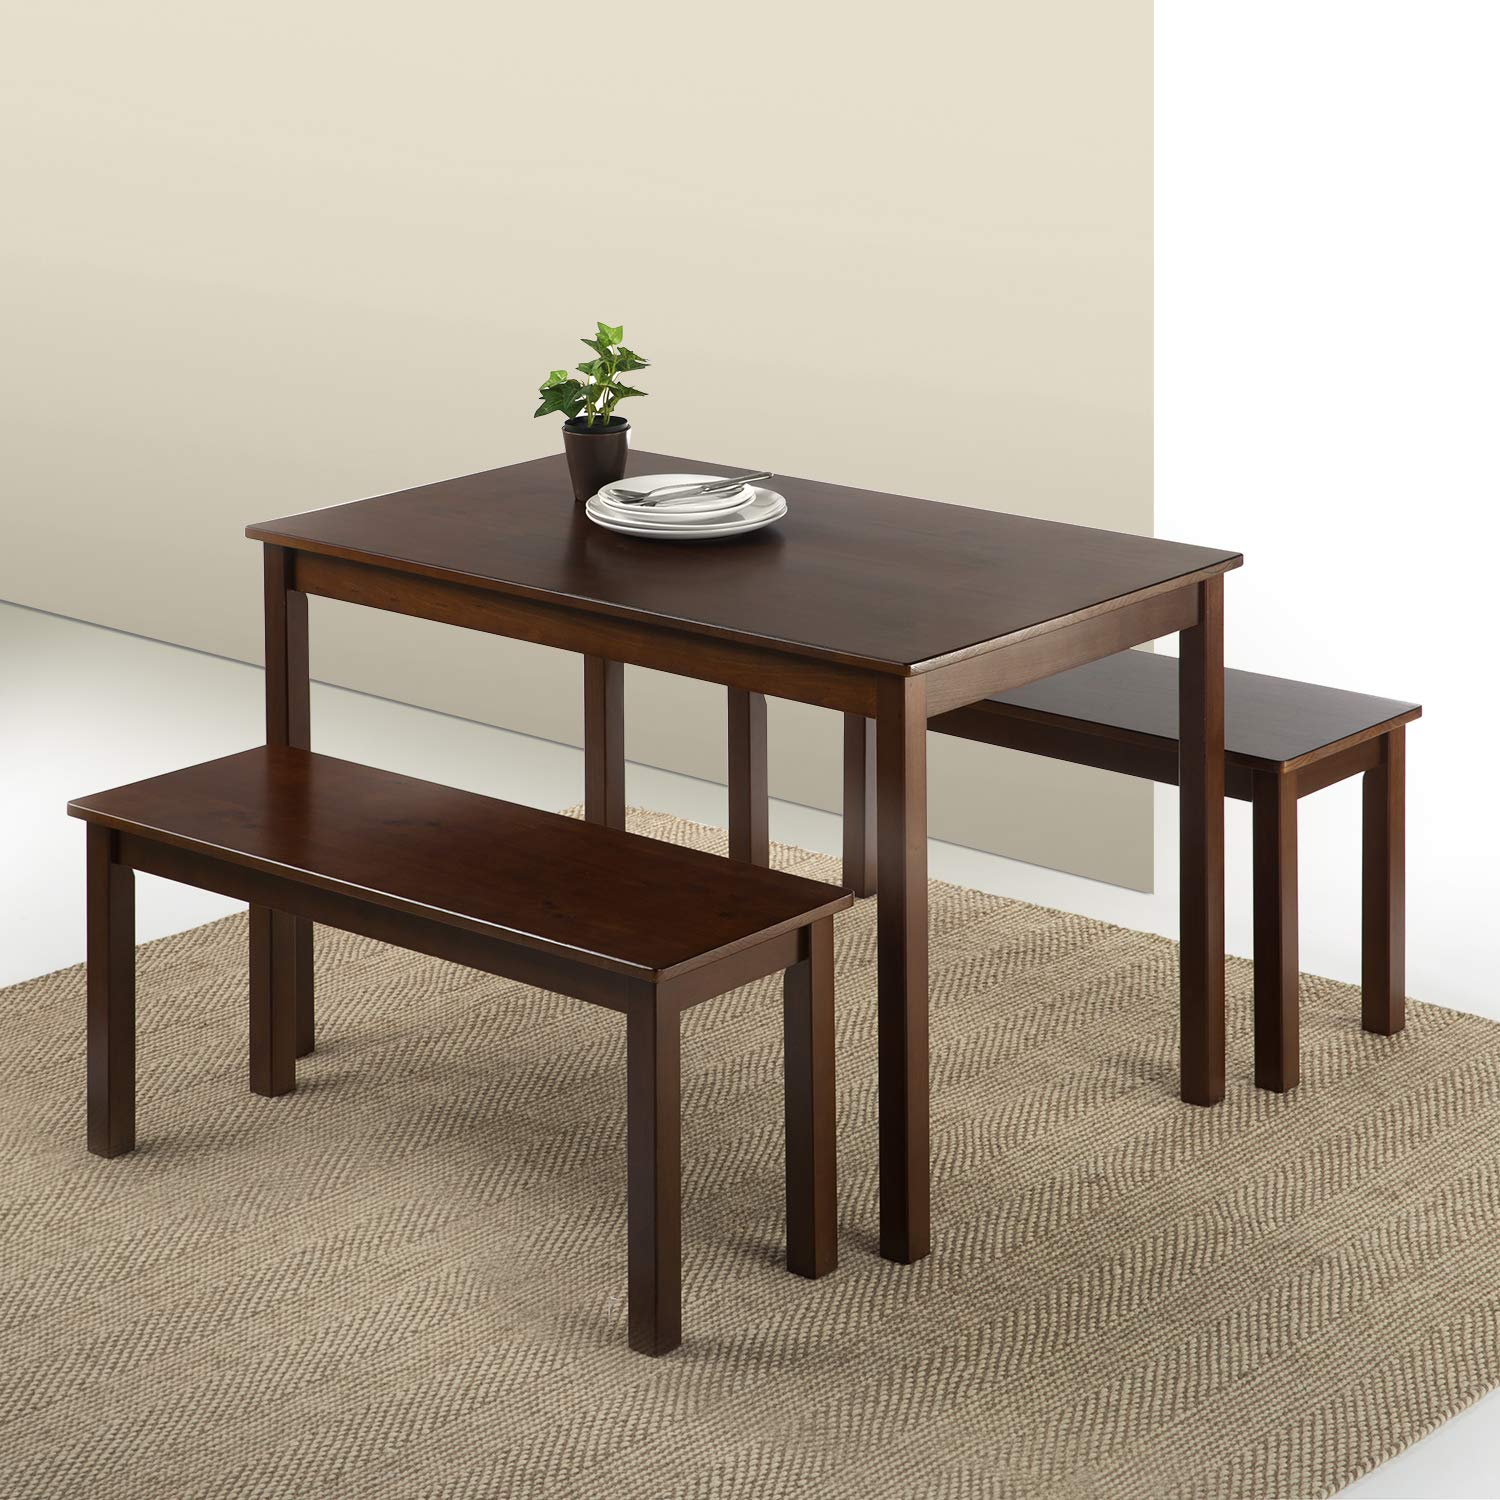 Zinus Juliet Espresso Wood Dining Table with Two Benches Deals